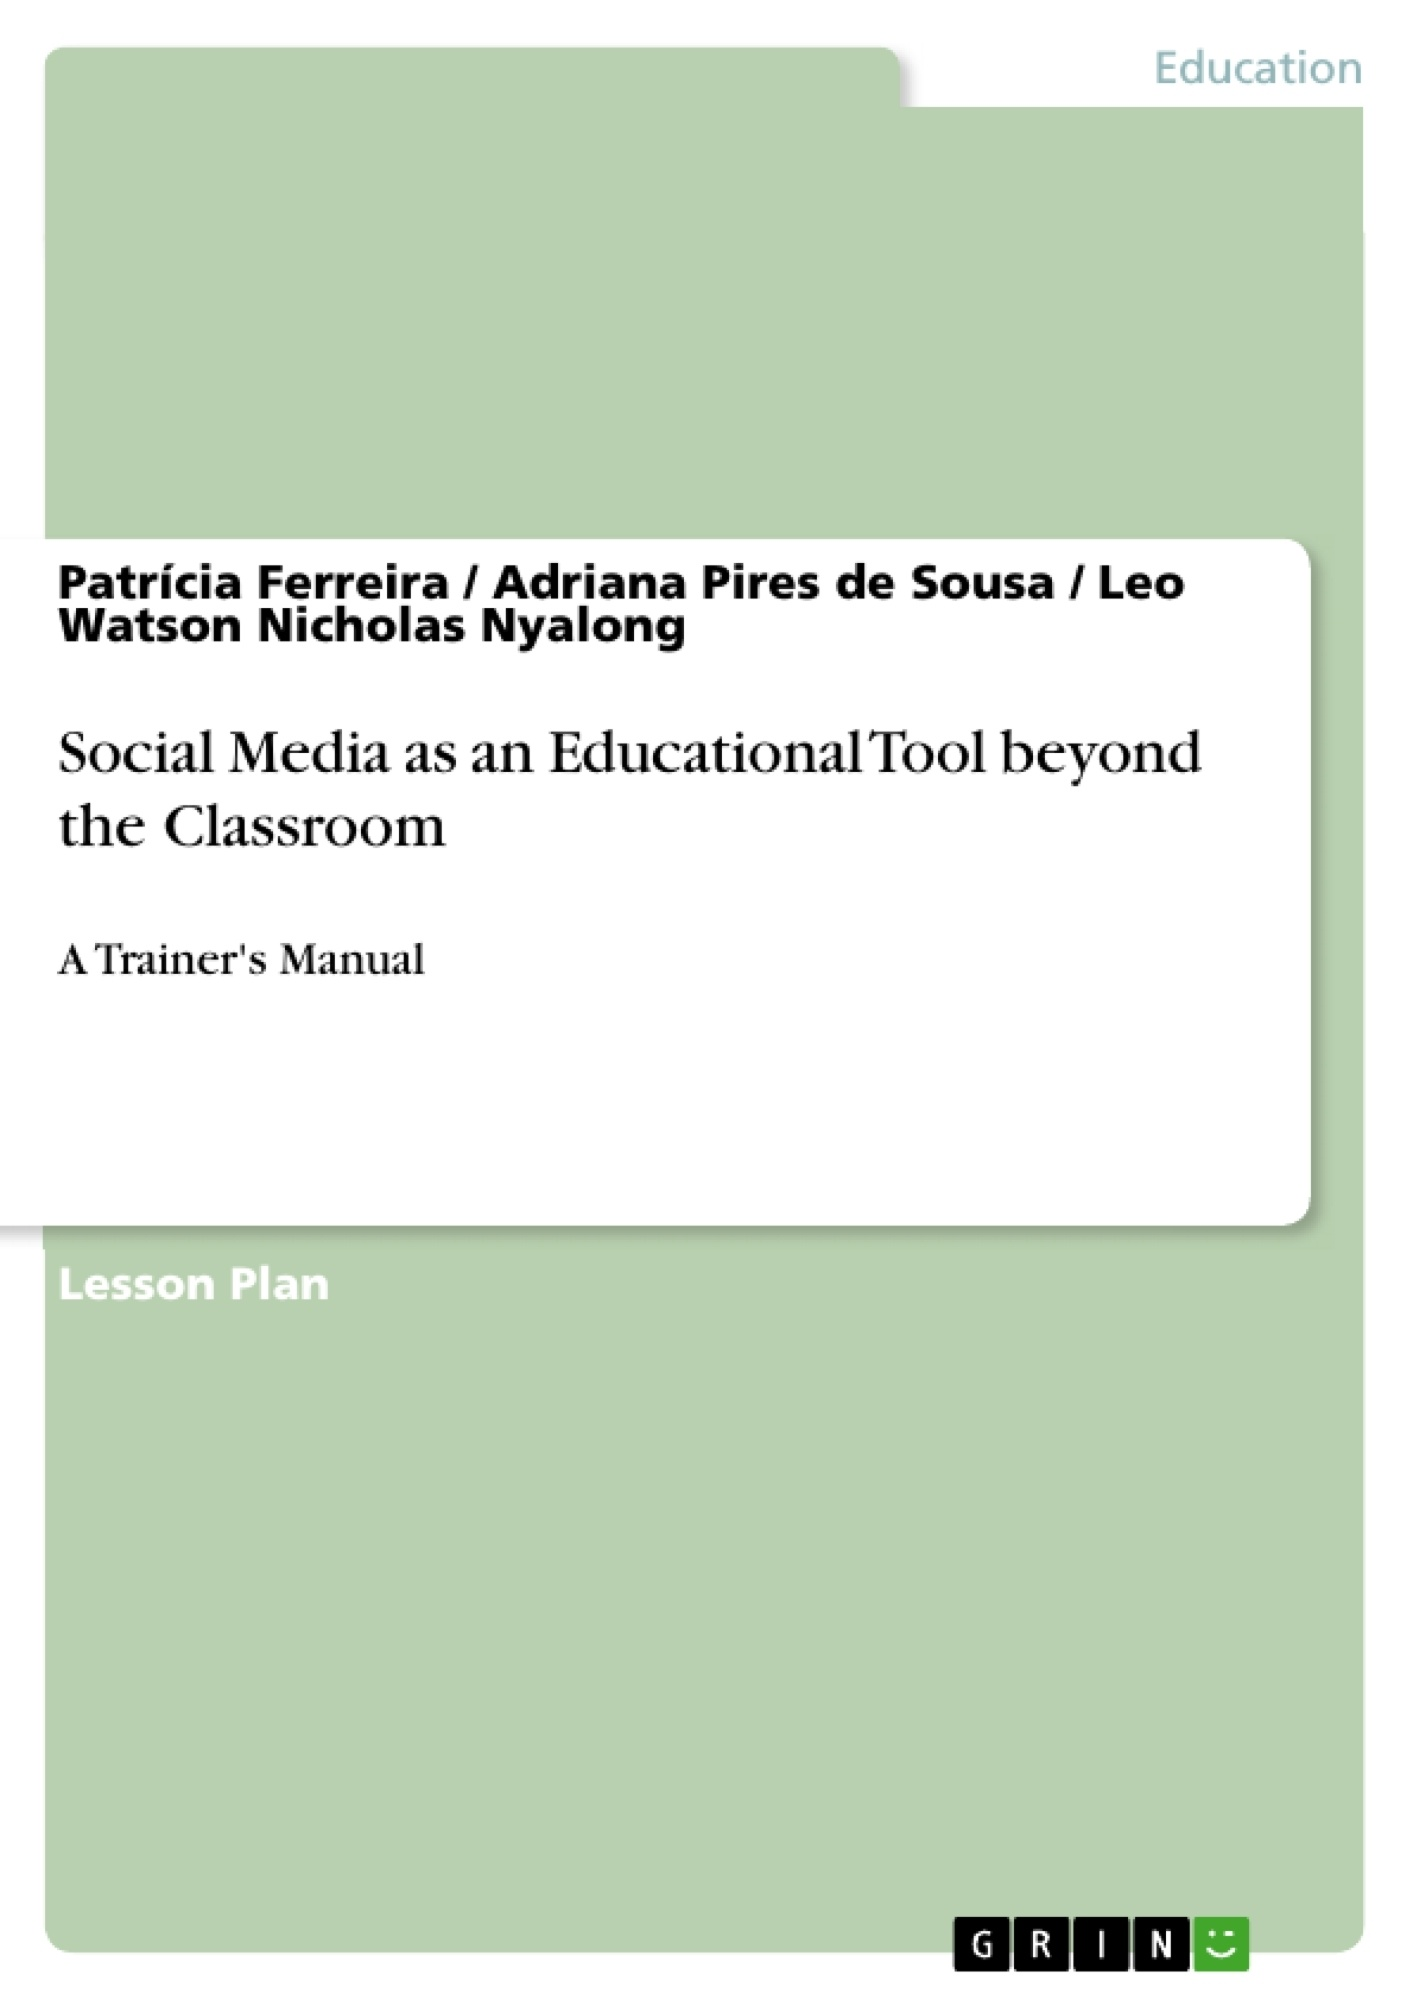 Title: Social Media as an Educational Tool beyond the Classroom